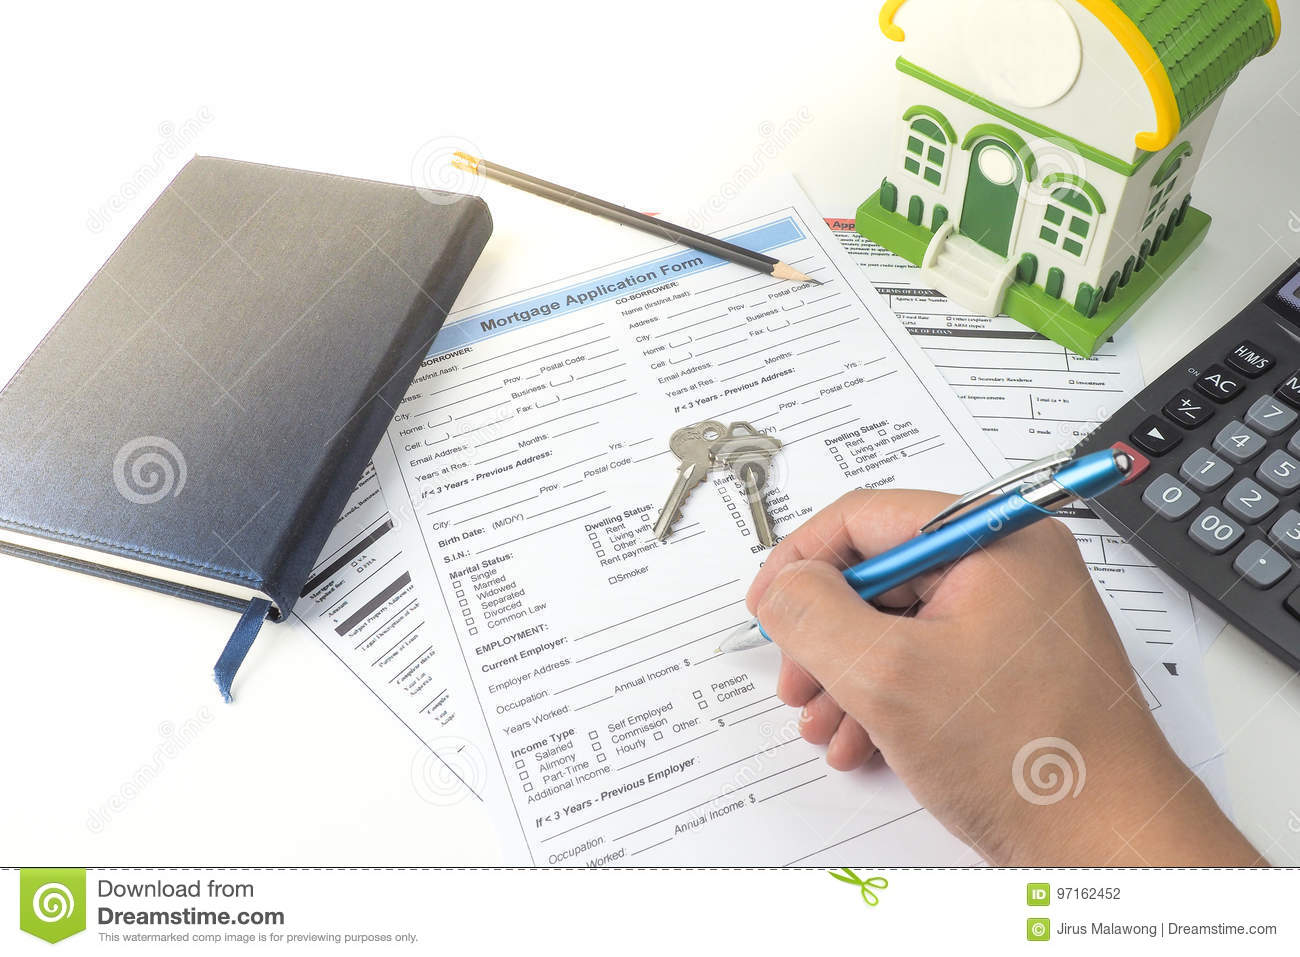 Mortgage application form, top view, house model, notebook.